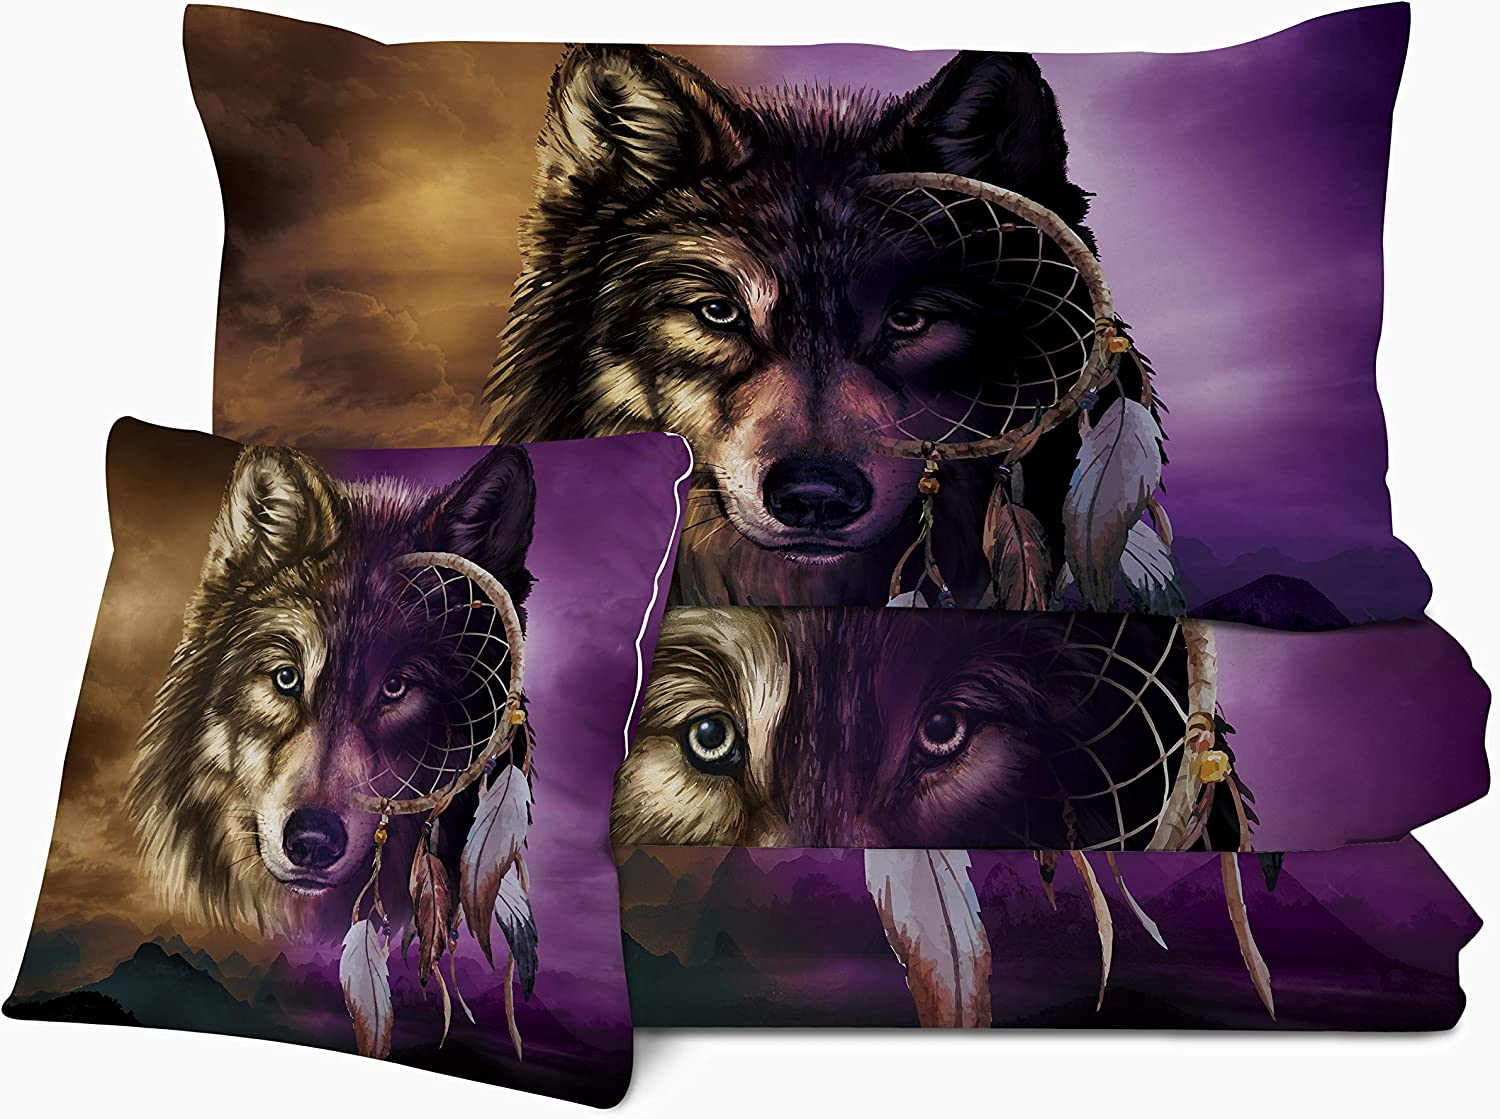 Sleepwish Wolf Dream Catcher Print Comforter Set 3D Gold Purple Wolf King Size Comforter 4 Pieces Bedding Sets with with 2 Pillow Shams and 1 Cushion Cover Lightweight Super Soft and Fluffy